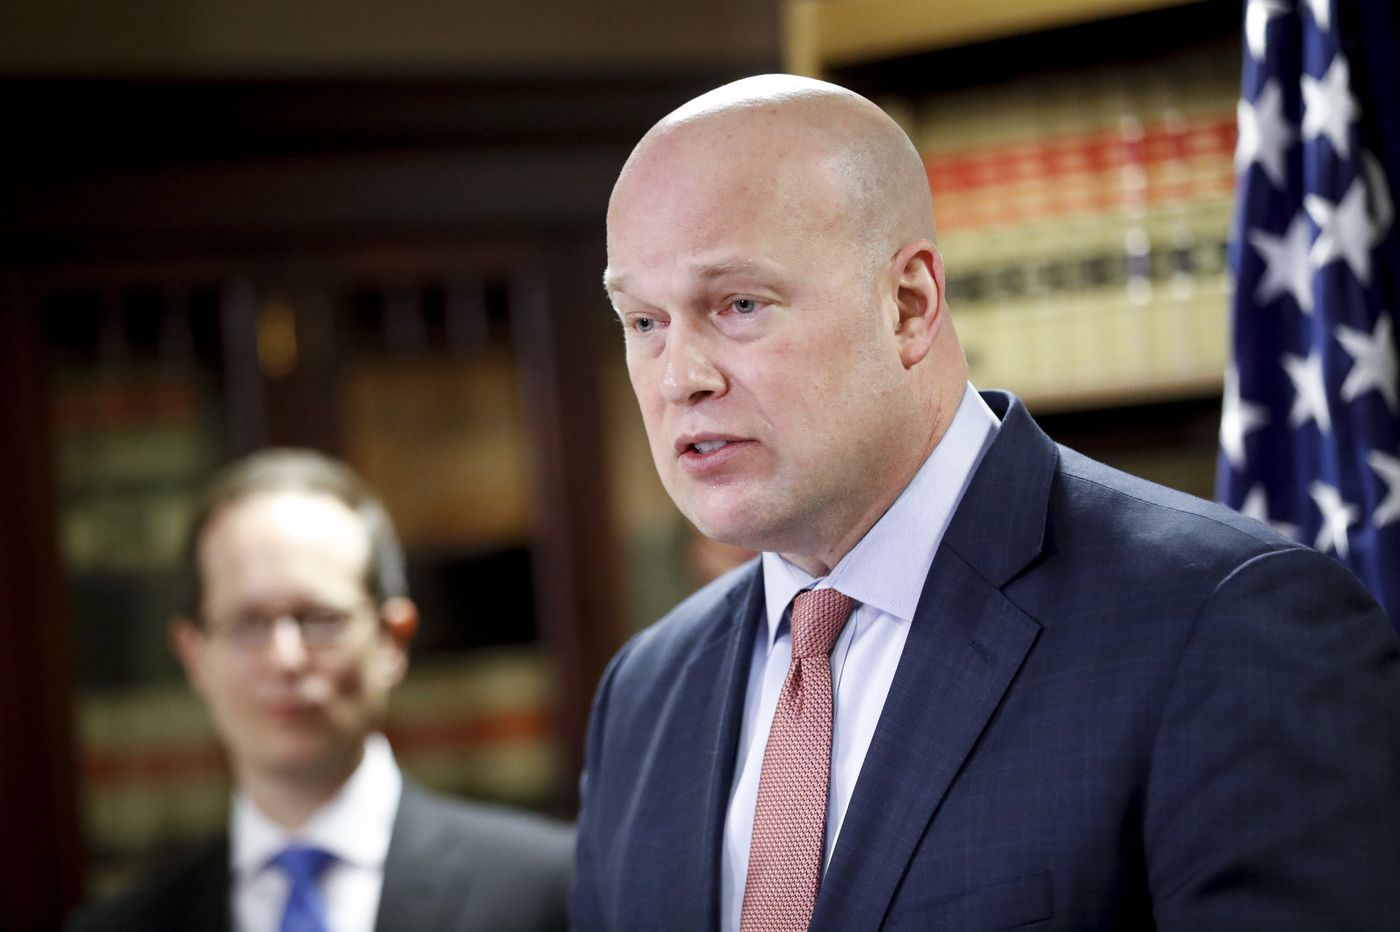 Ethics: Whitaker need not recuse from supervising special counsel probe, according to person familiar with matter